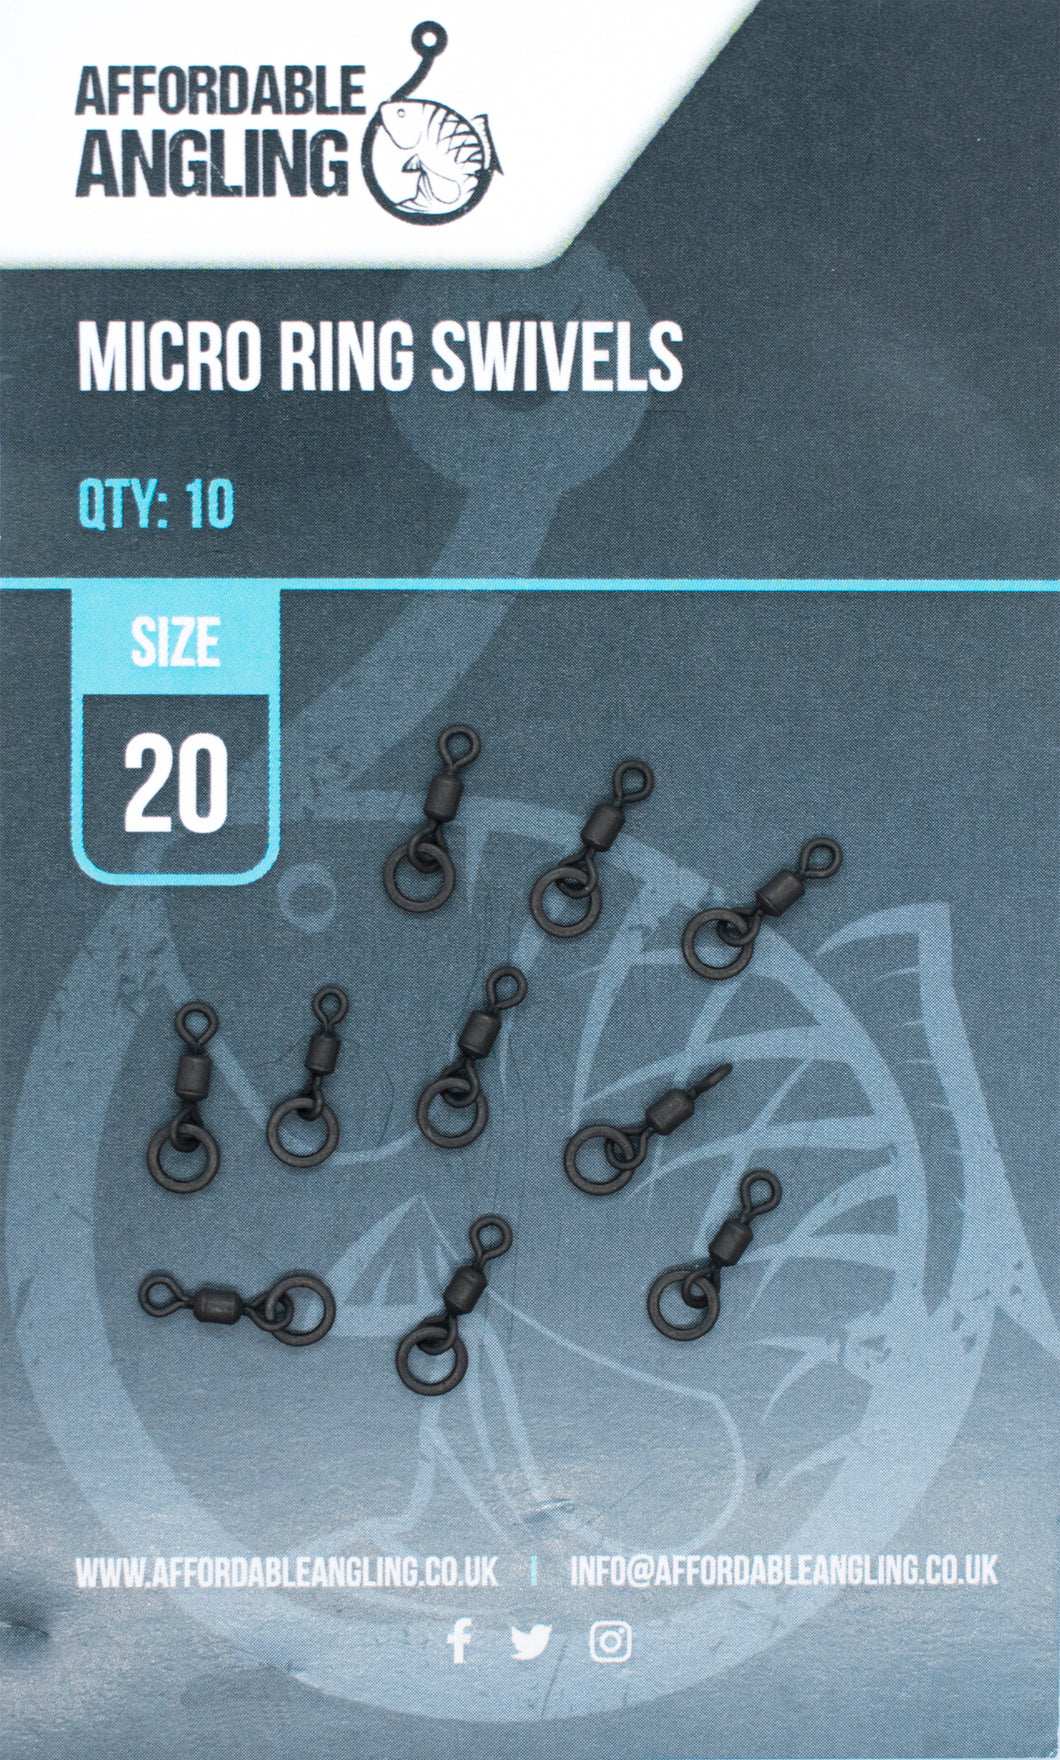 Micro Ring Swivels